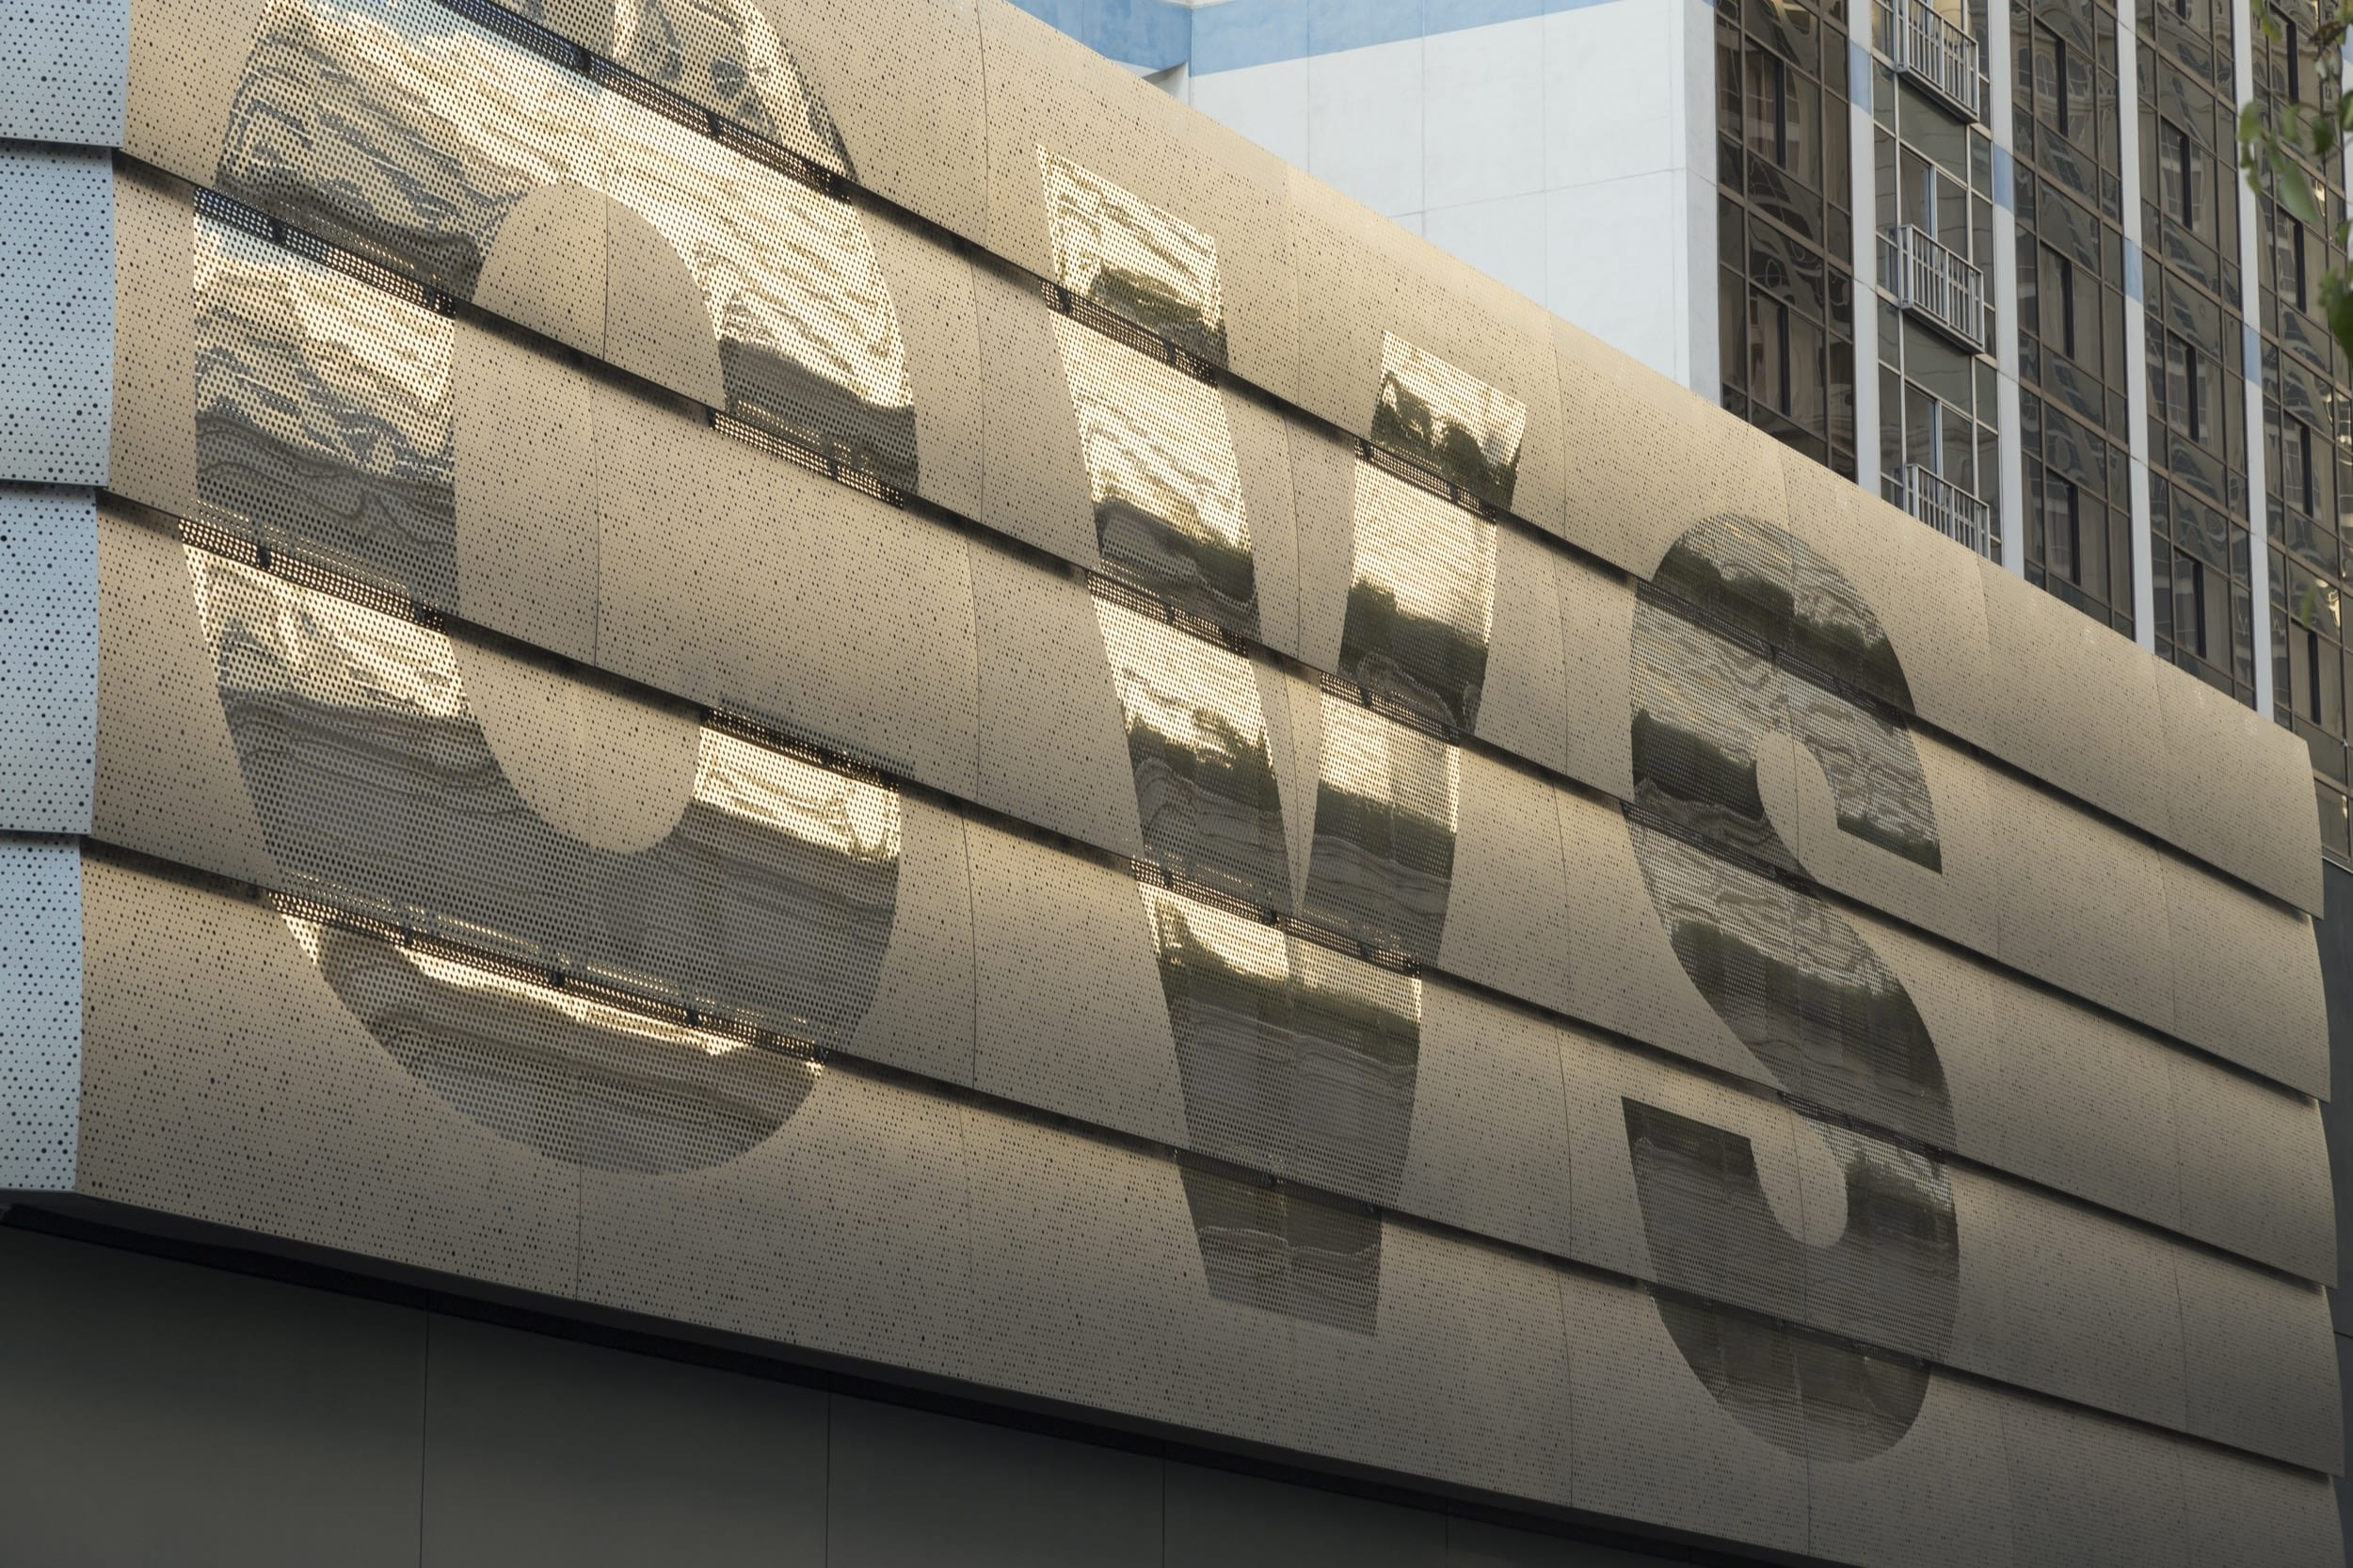 Curved, overlapping ImageWall panels depict the CVS logo